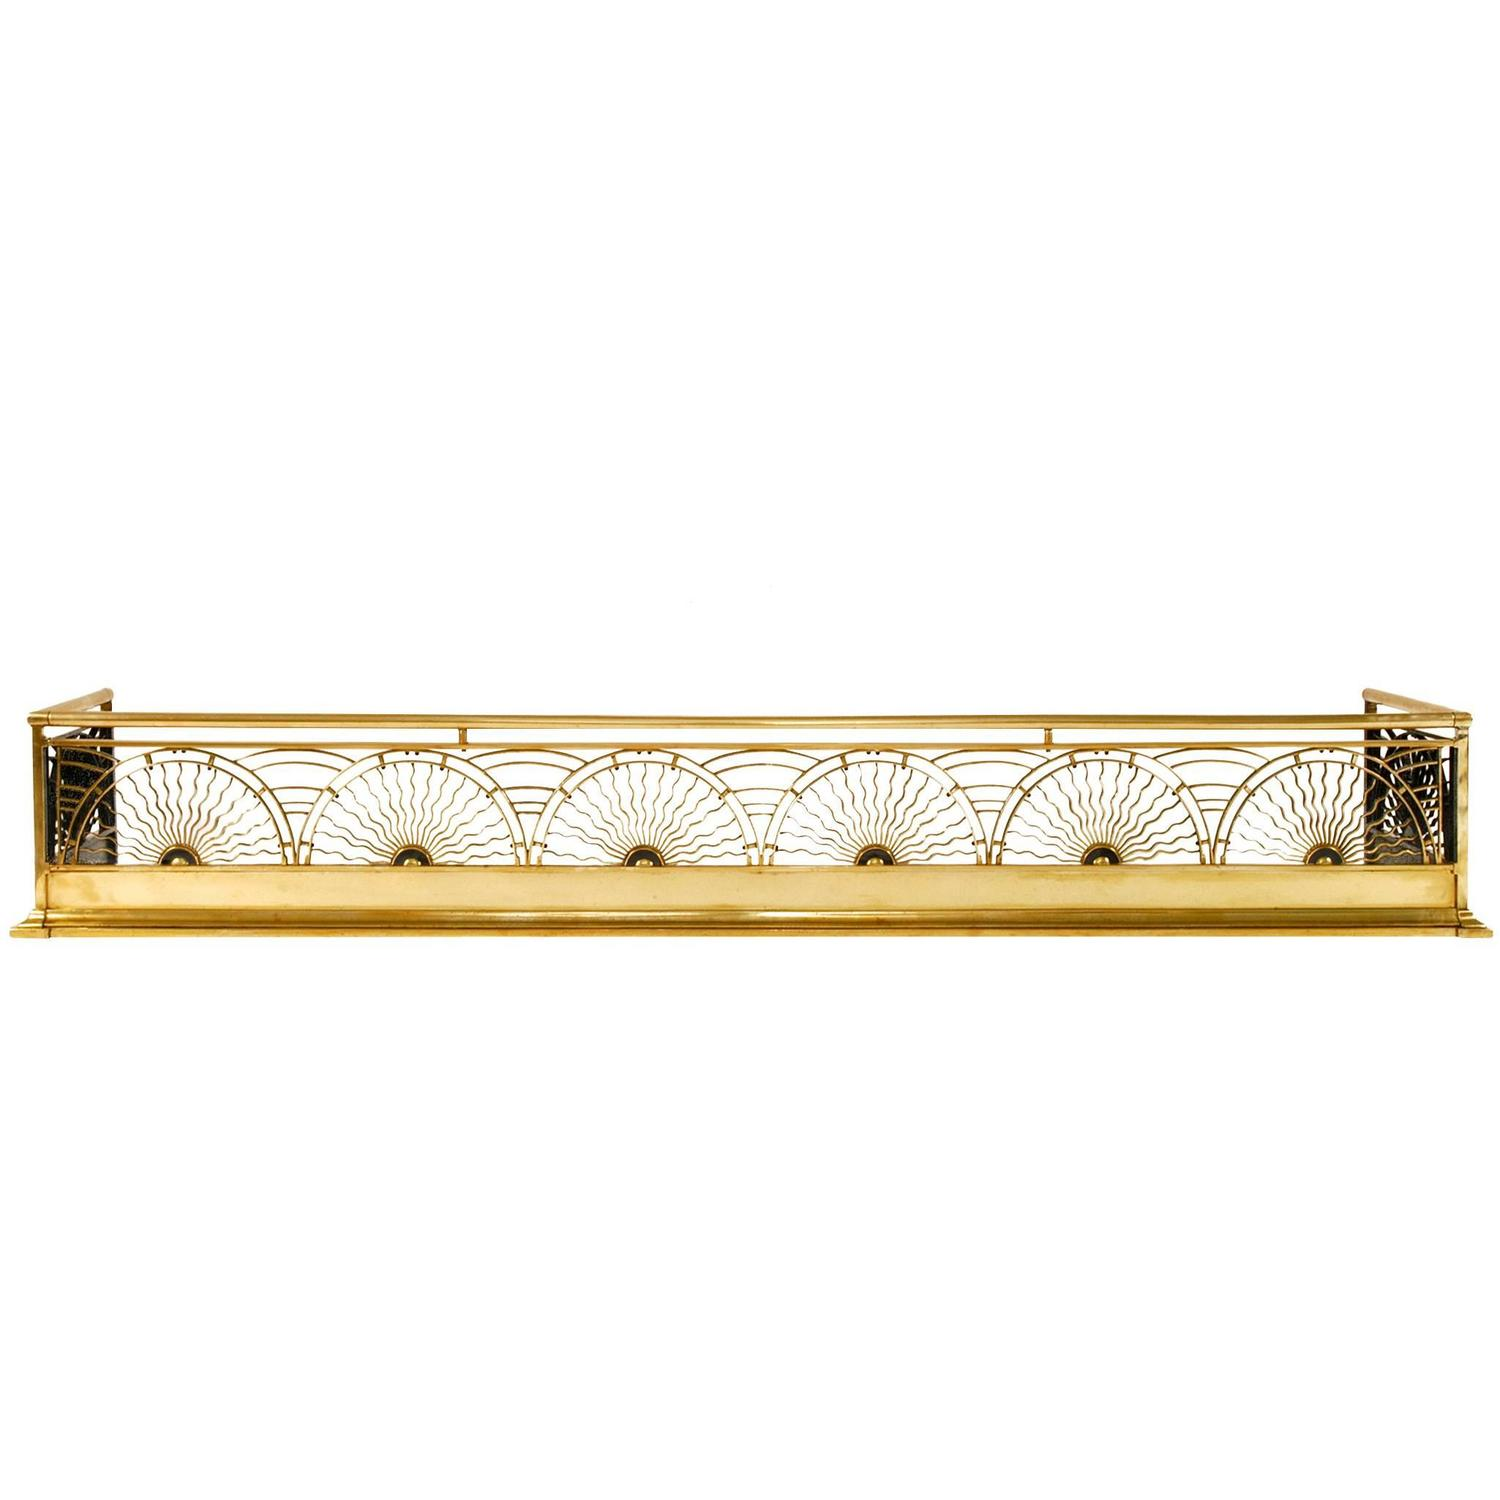 thomas jeckyll brass fireplace fender for sale at 1stdibs